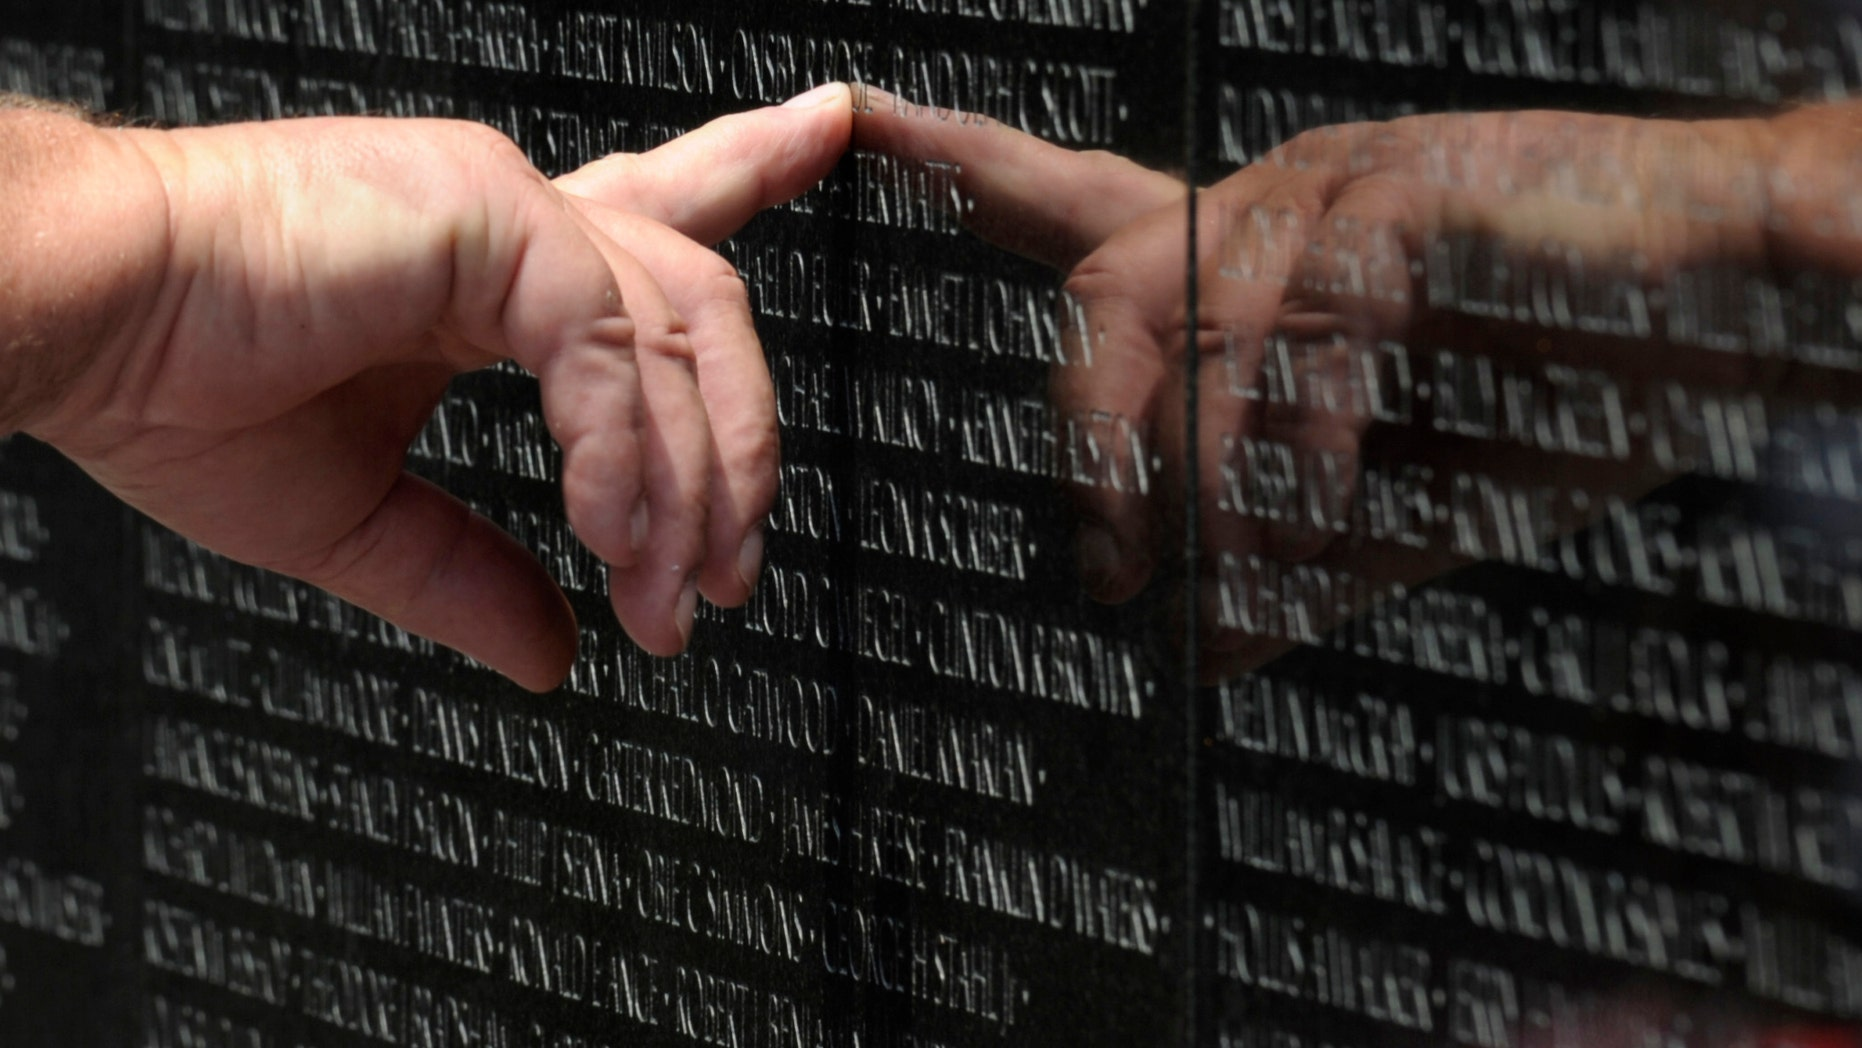 A visitor to the Vietnam Veteran's Memorial touches the name of a fallen soldier etched on the wall of the memorial in Washington, Friday, May 25, 2012. On Monday, the Vietnam Veterans Memorial Wall will begin the national commemoration of the Vietnam Warâs 50th anniversary. (AP Photo/Susan Walsh)